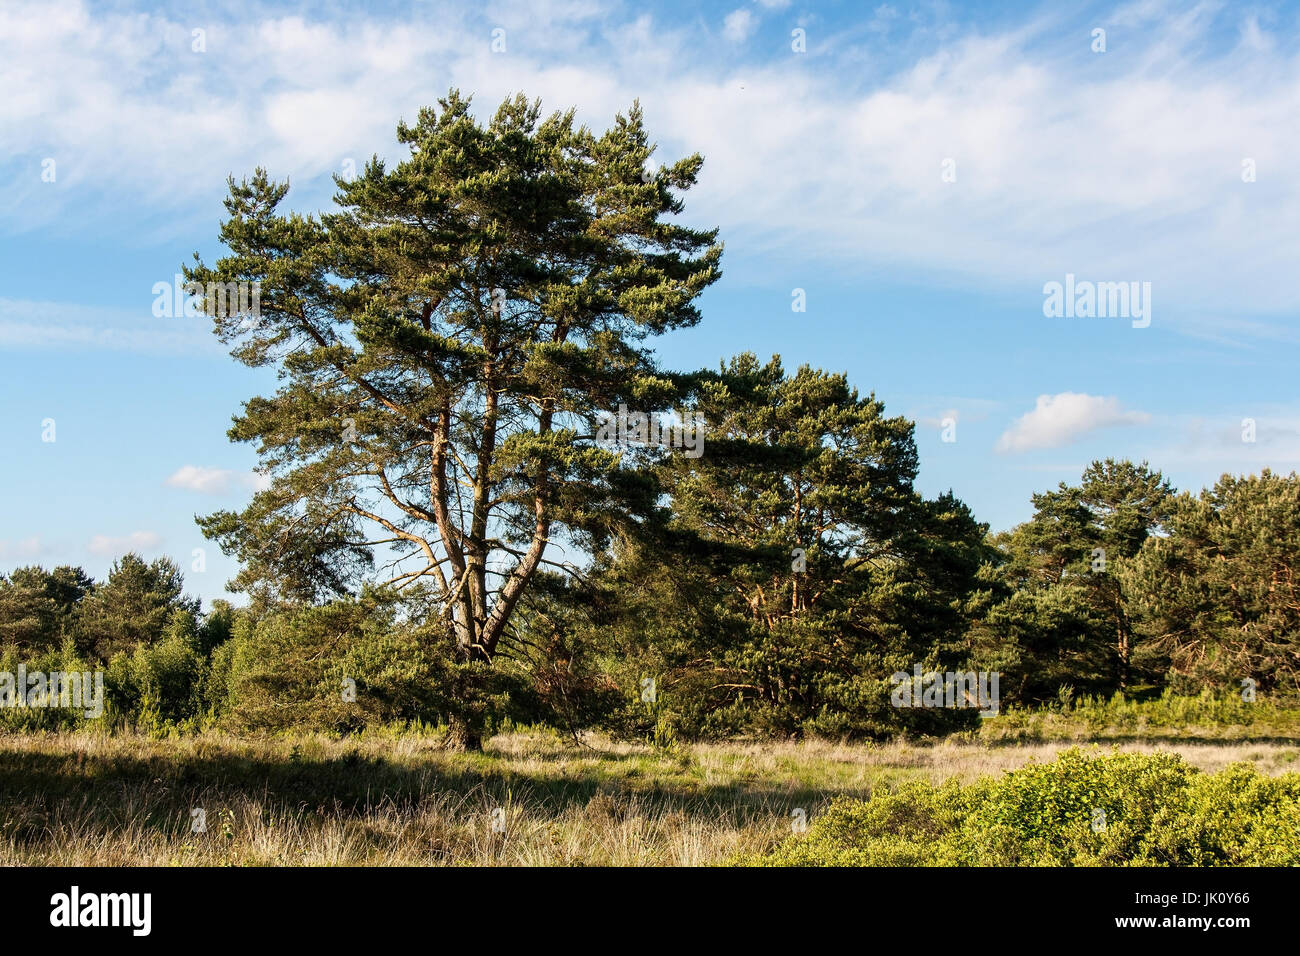 pines with partly weird principal forms on moor surface with gagelstrauch growth, kiefern mit teils bizarren stammformen - Stock Image